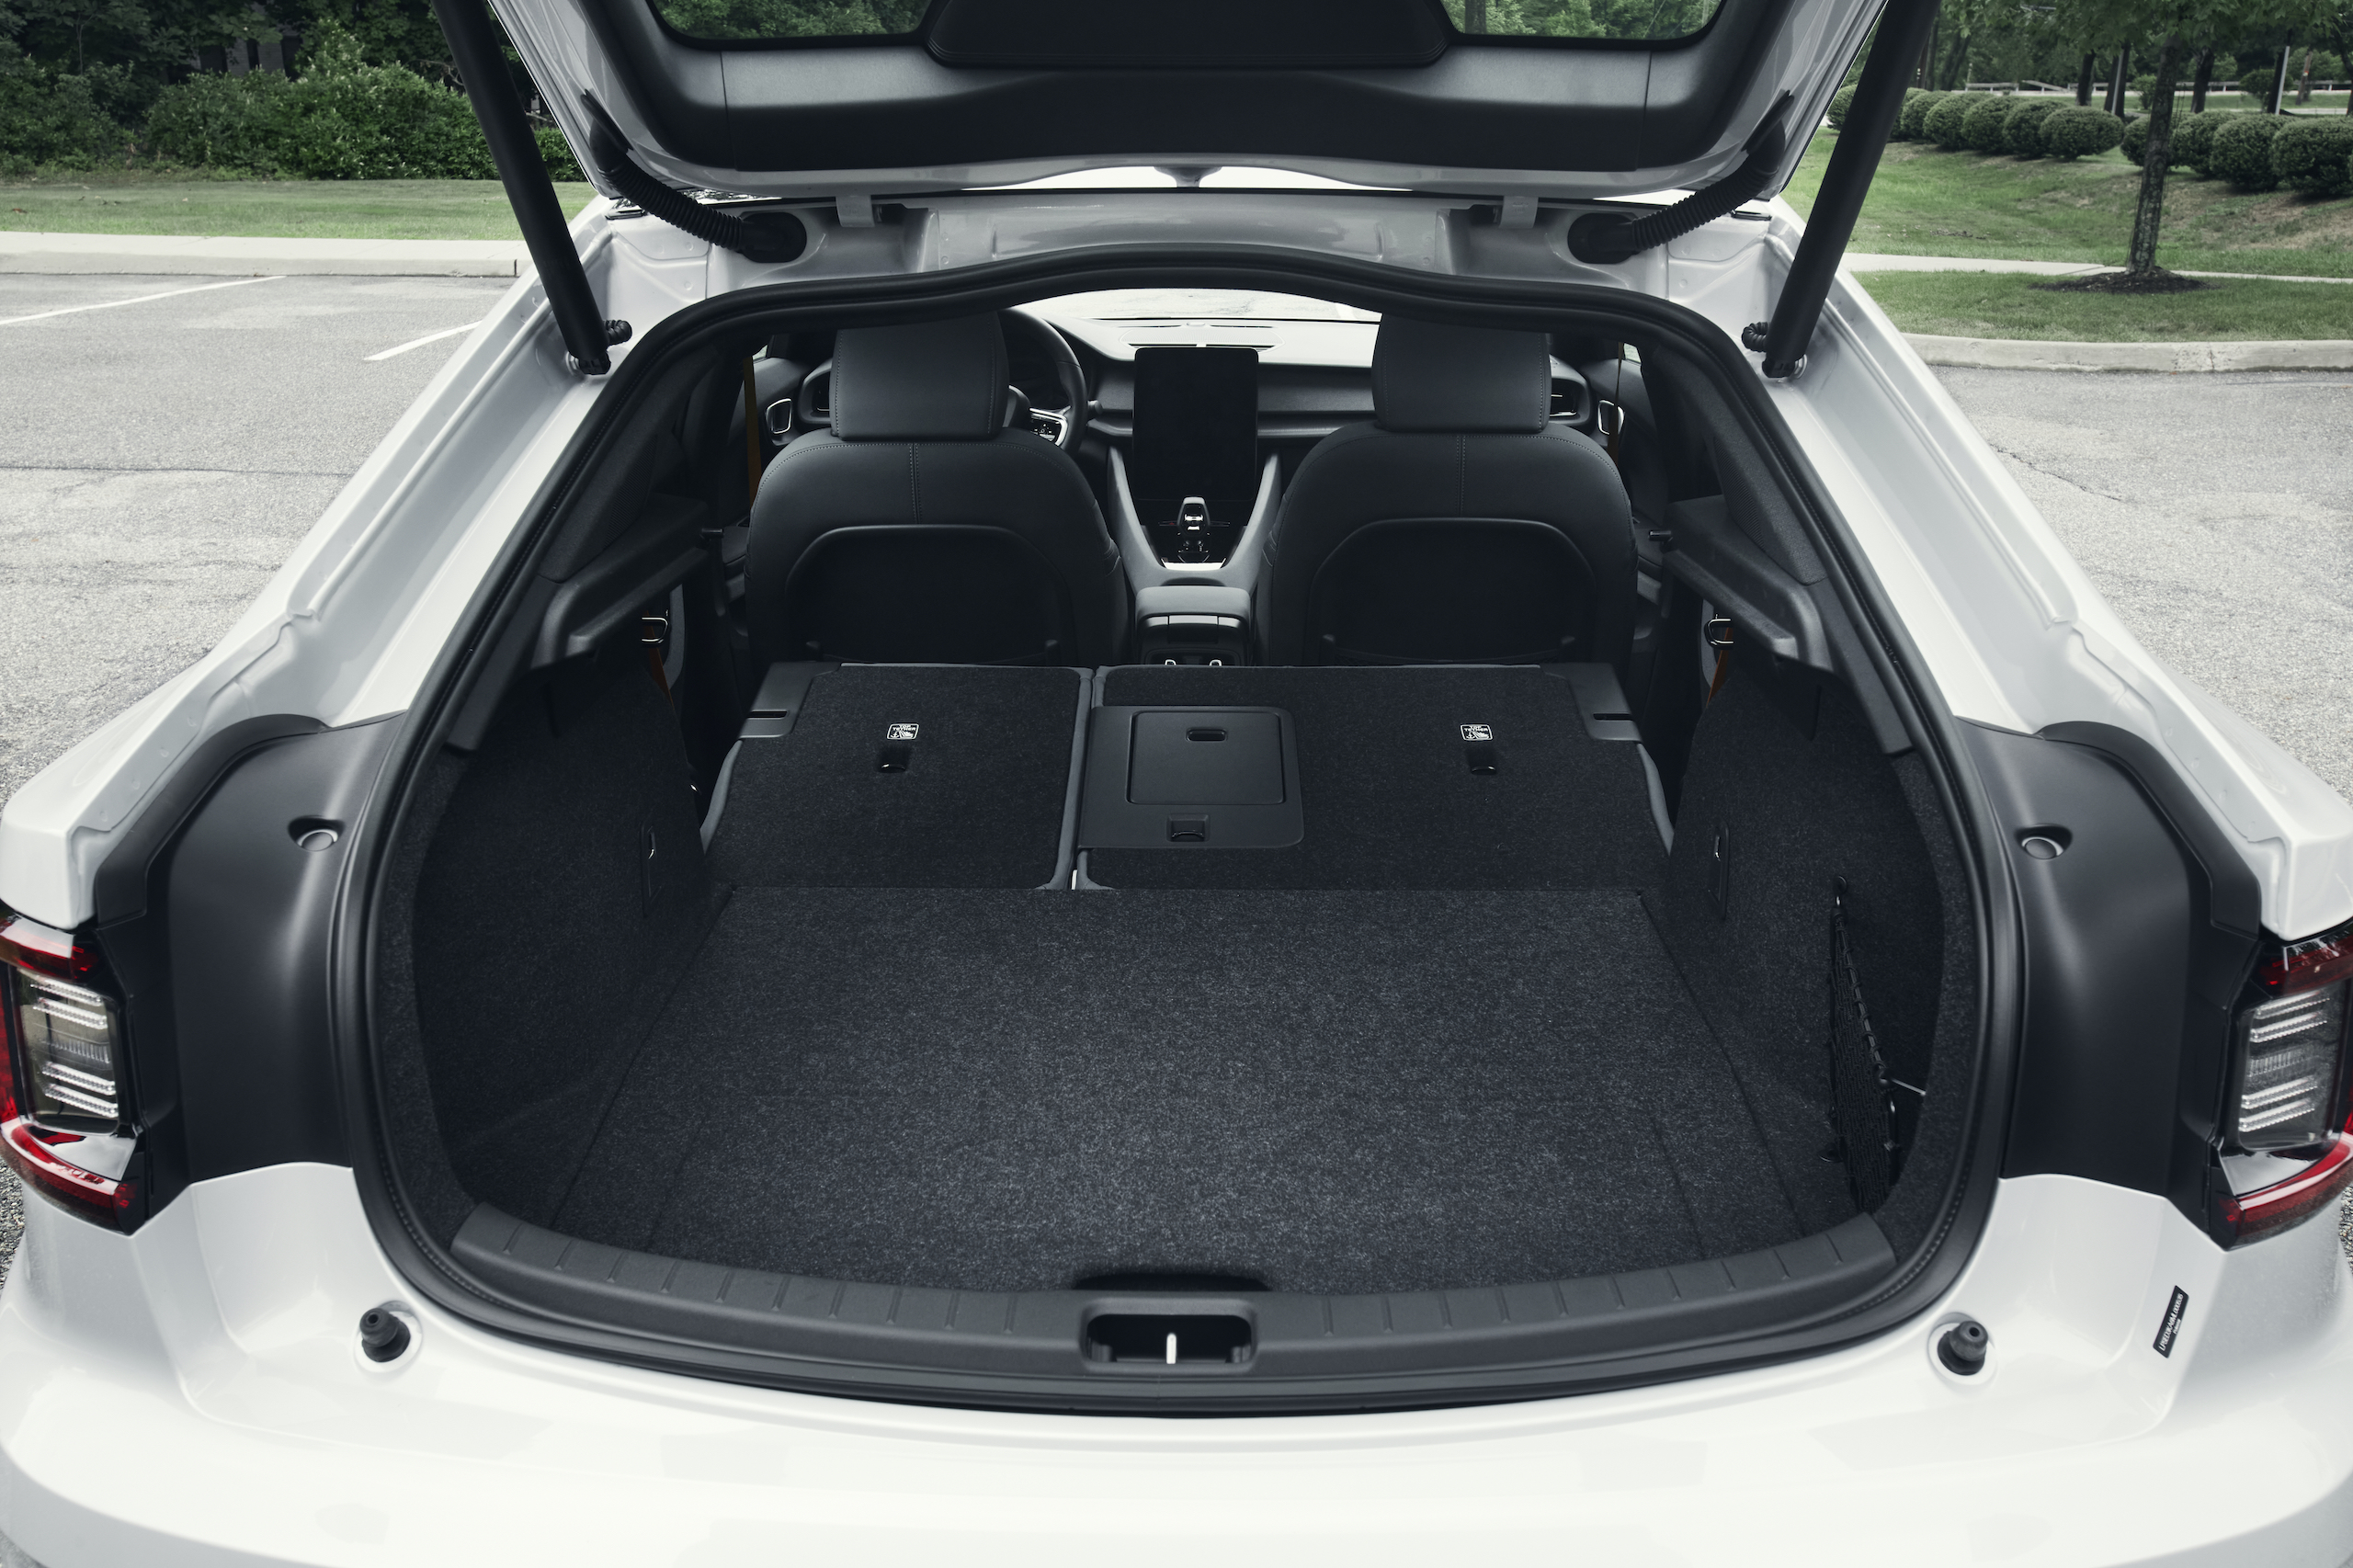 Polestar 2 rear trunk storage